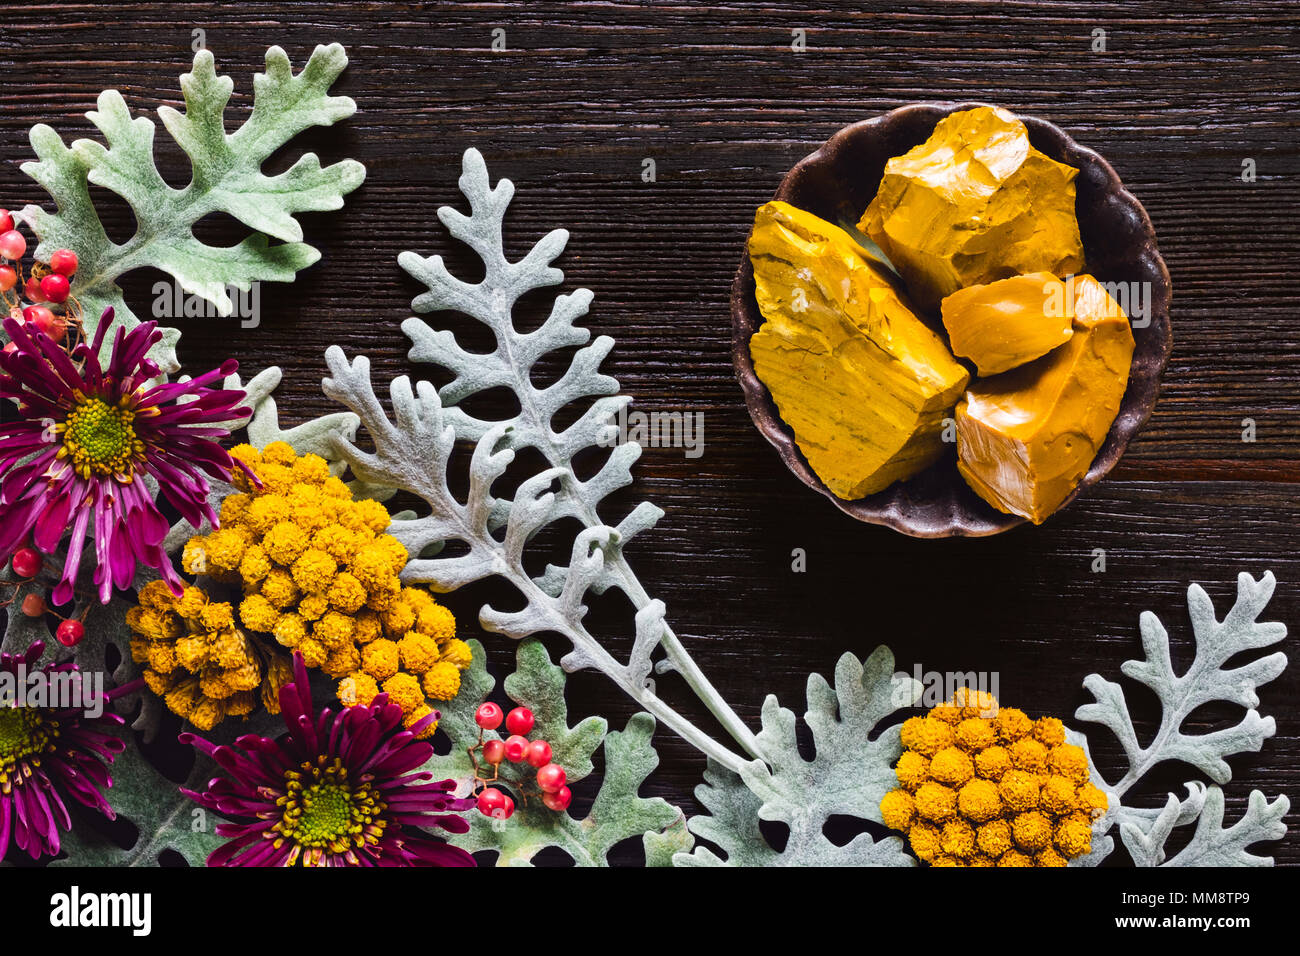 Yellow Jasper Stones with Dusty Miller, Clustered Everlasting and Chrysanthemums on Dark Table with Space for Copy - Stock Image